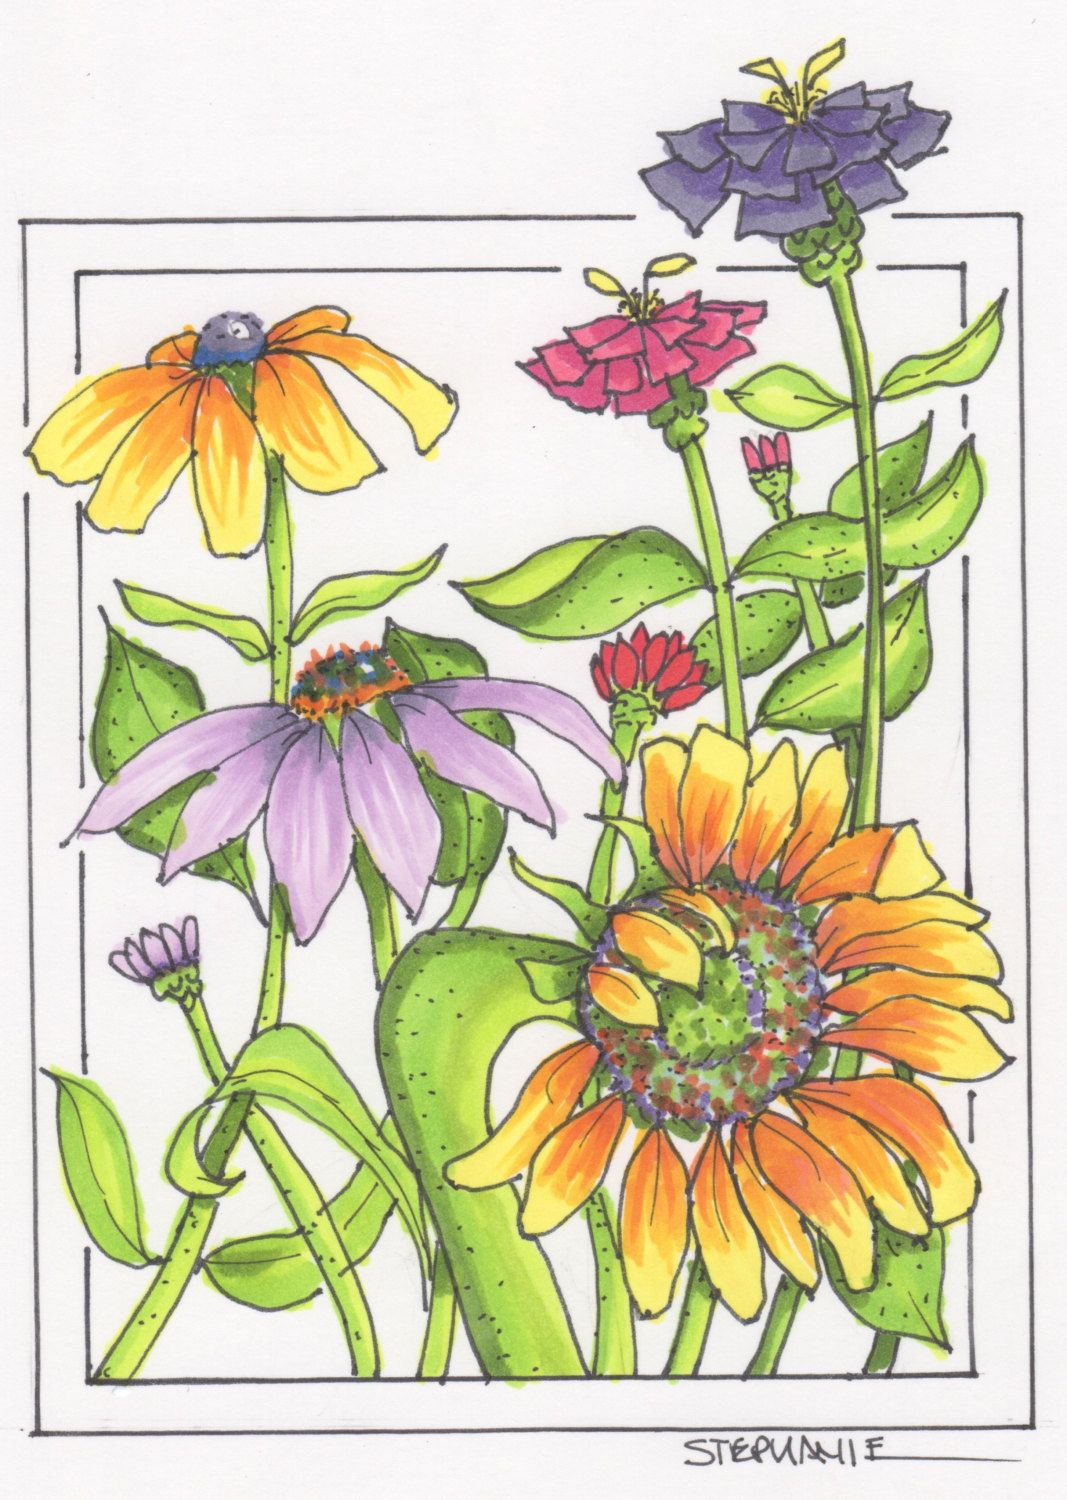 copic coloring sunflower and purple cone flower part 2 art print by SippAndMaryMade on Etsy